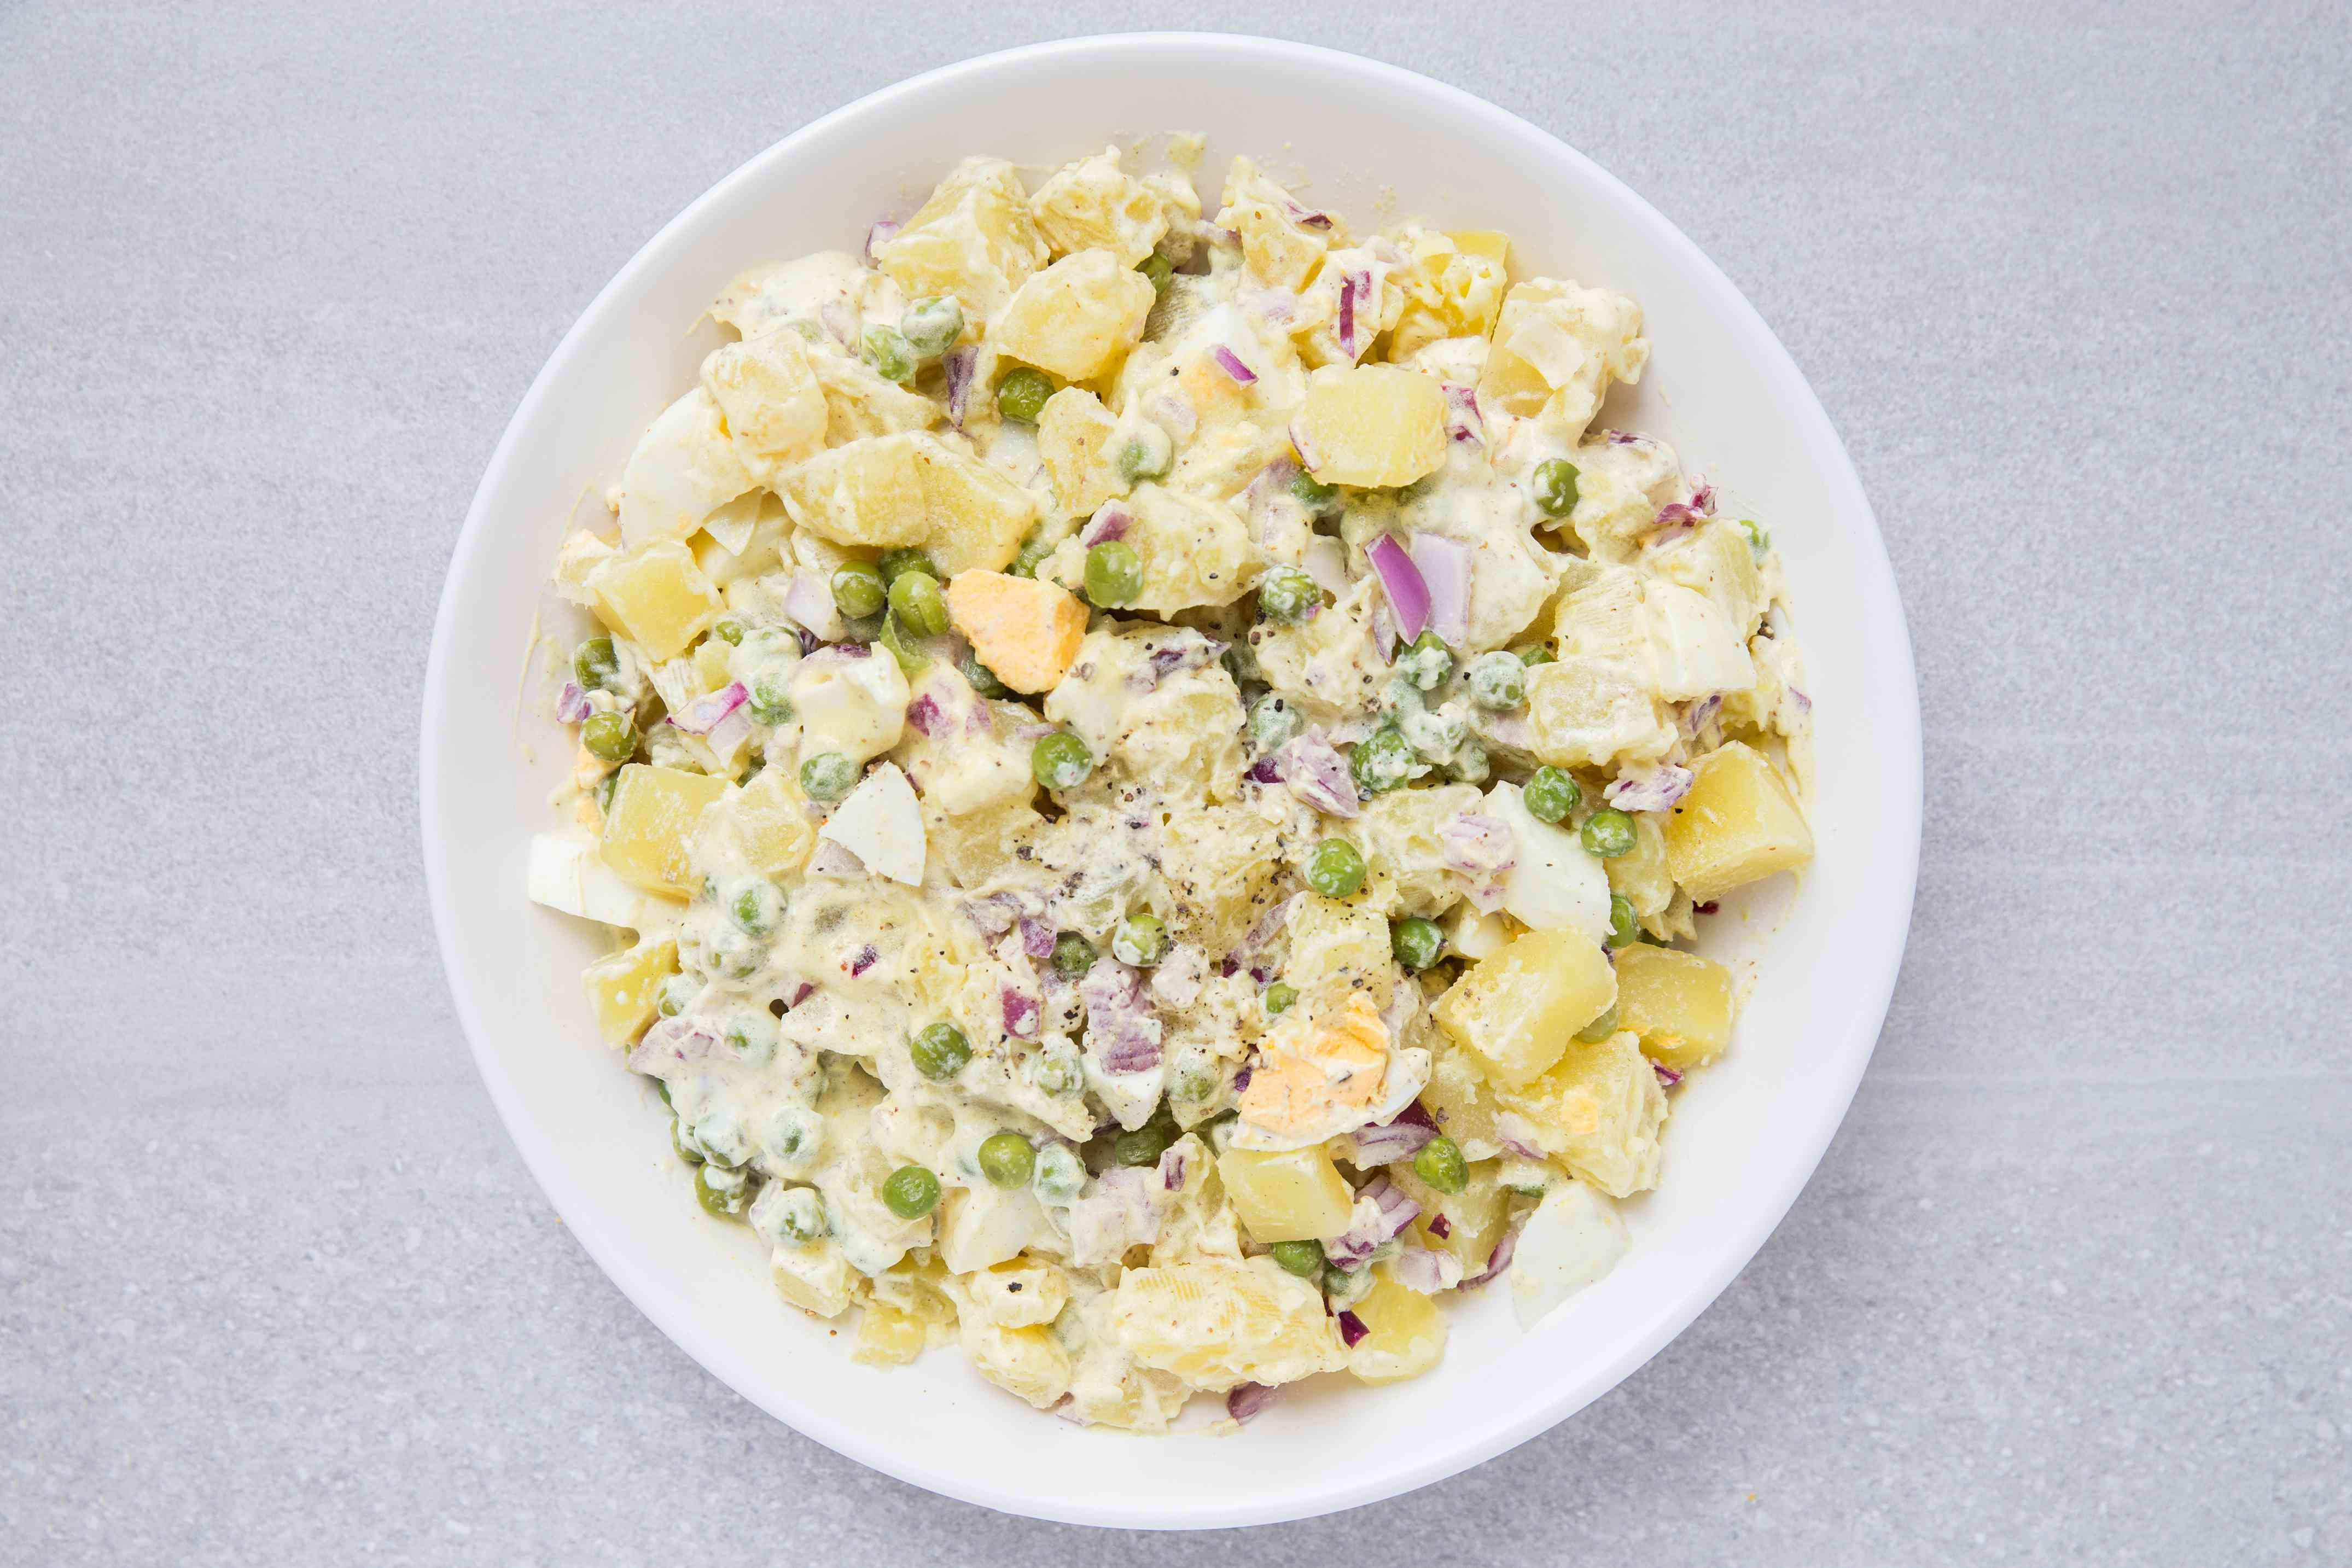 Potato Salad With Eggs and Peas in a bowl